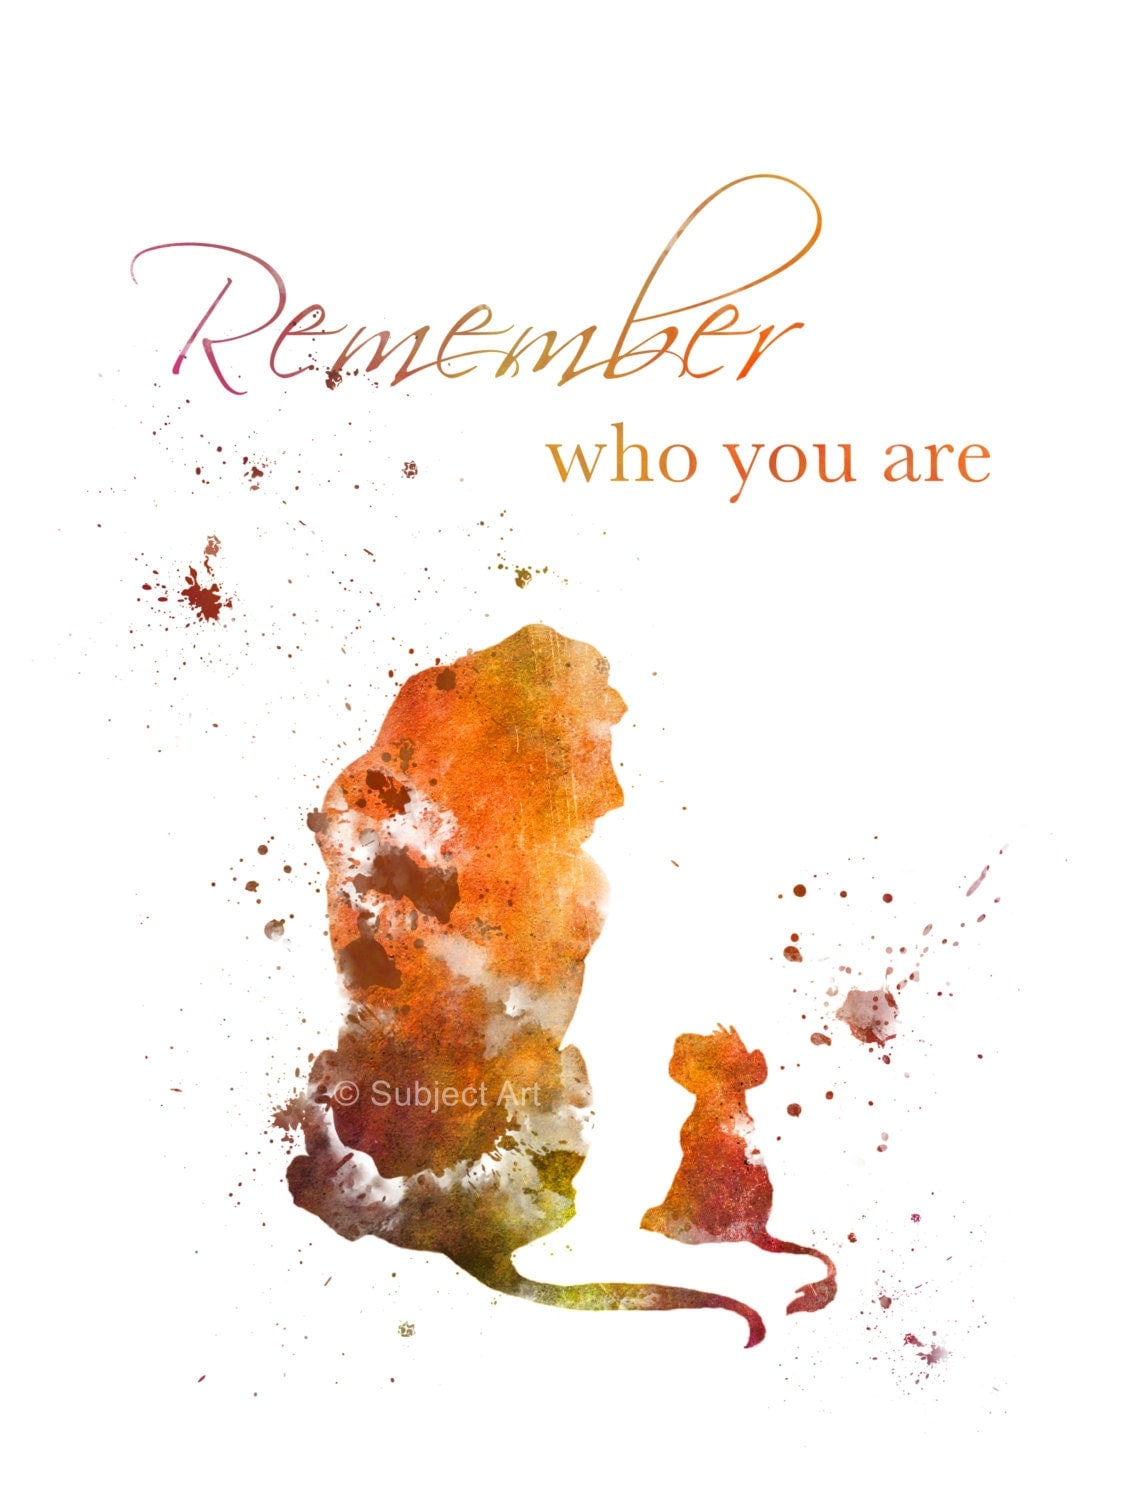 ART PRINT The Lion King Quote 'Remember who you are' by SubjectArt: https://www.etsy.com/listing/220668079/art-print-the-lion-king...